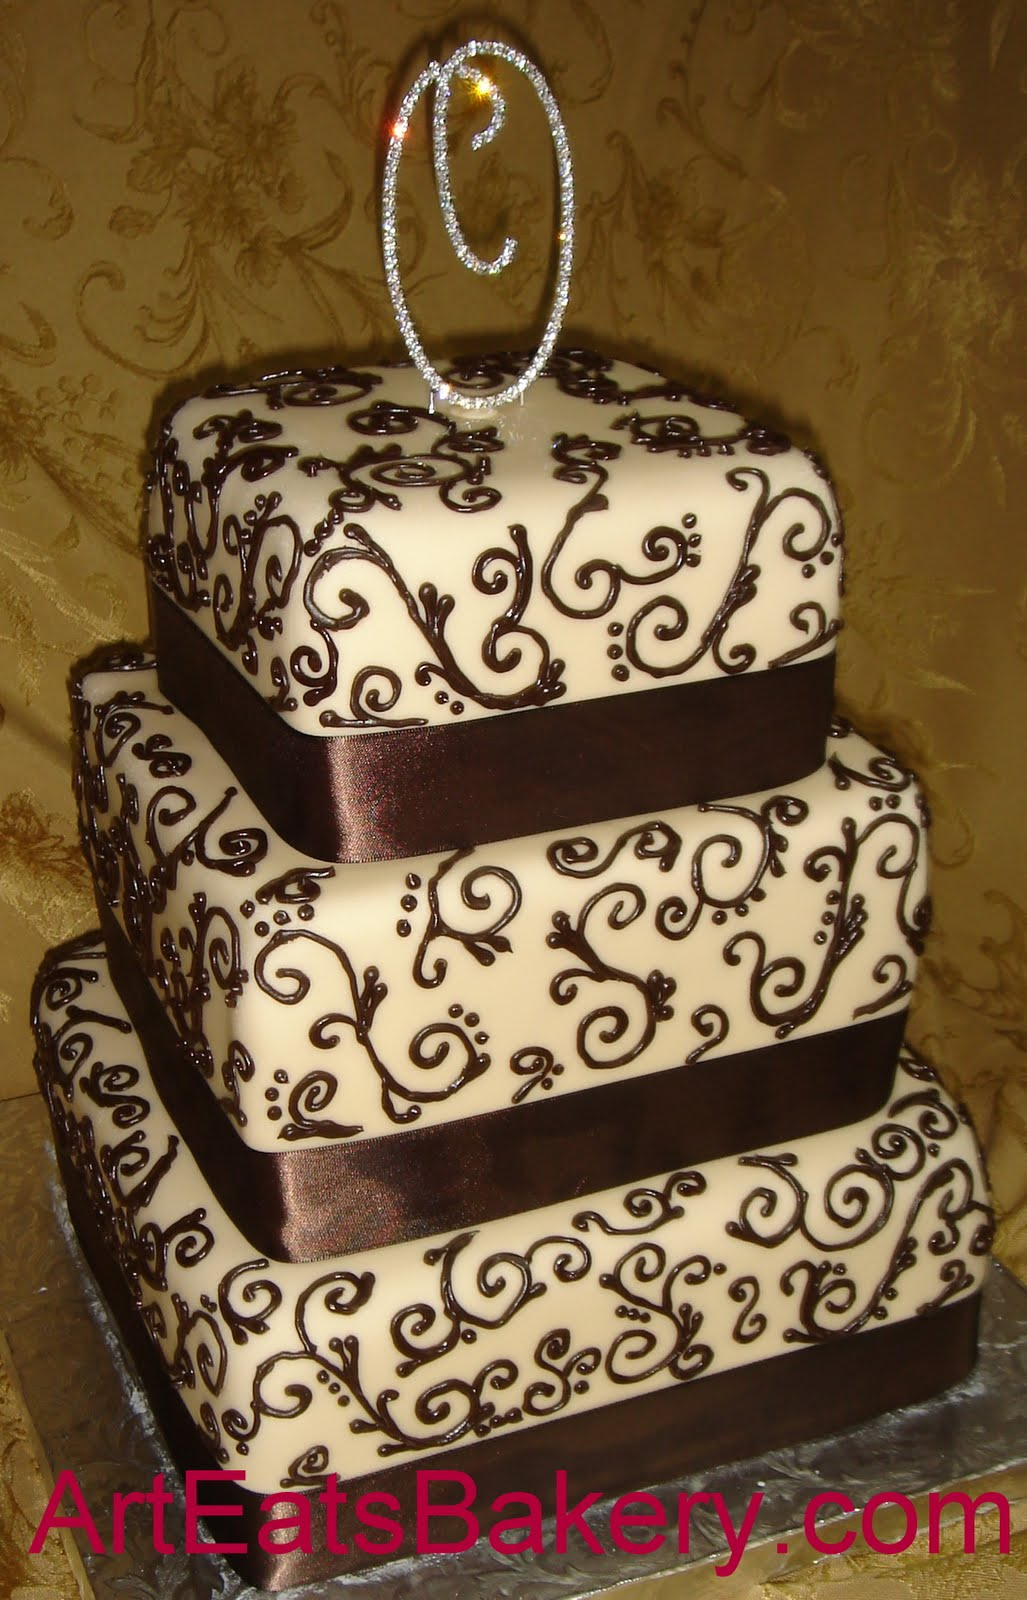 Photo Design On Cake : Bold custom unique cake wedding cake designs arteatsbakery